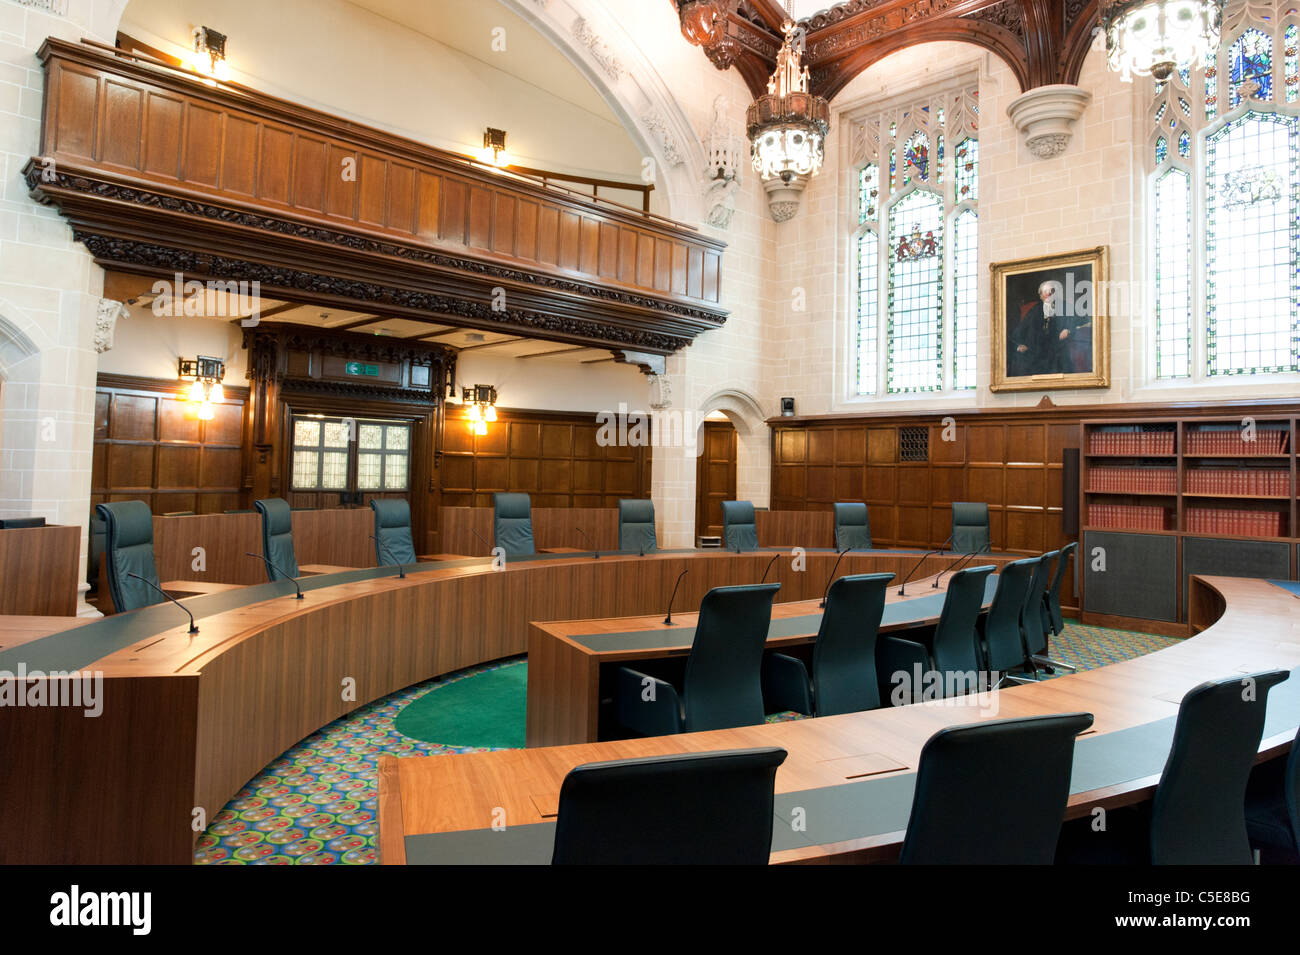 Courtroom 1 of The Supreme Court of the United Kingdom, London, UK - Stock Image